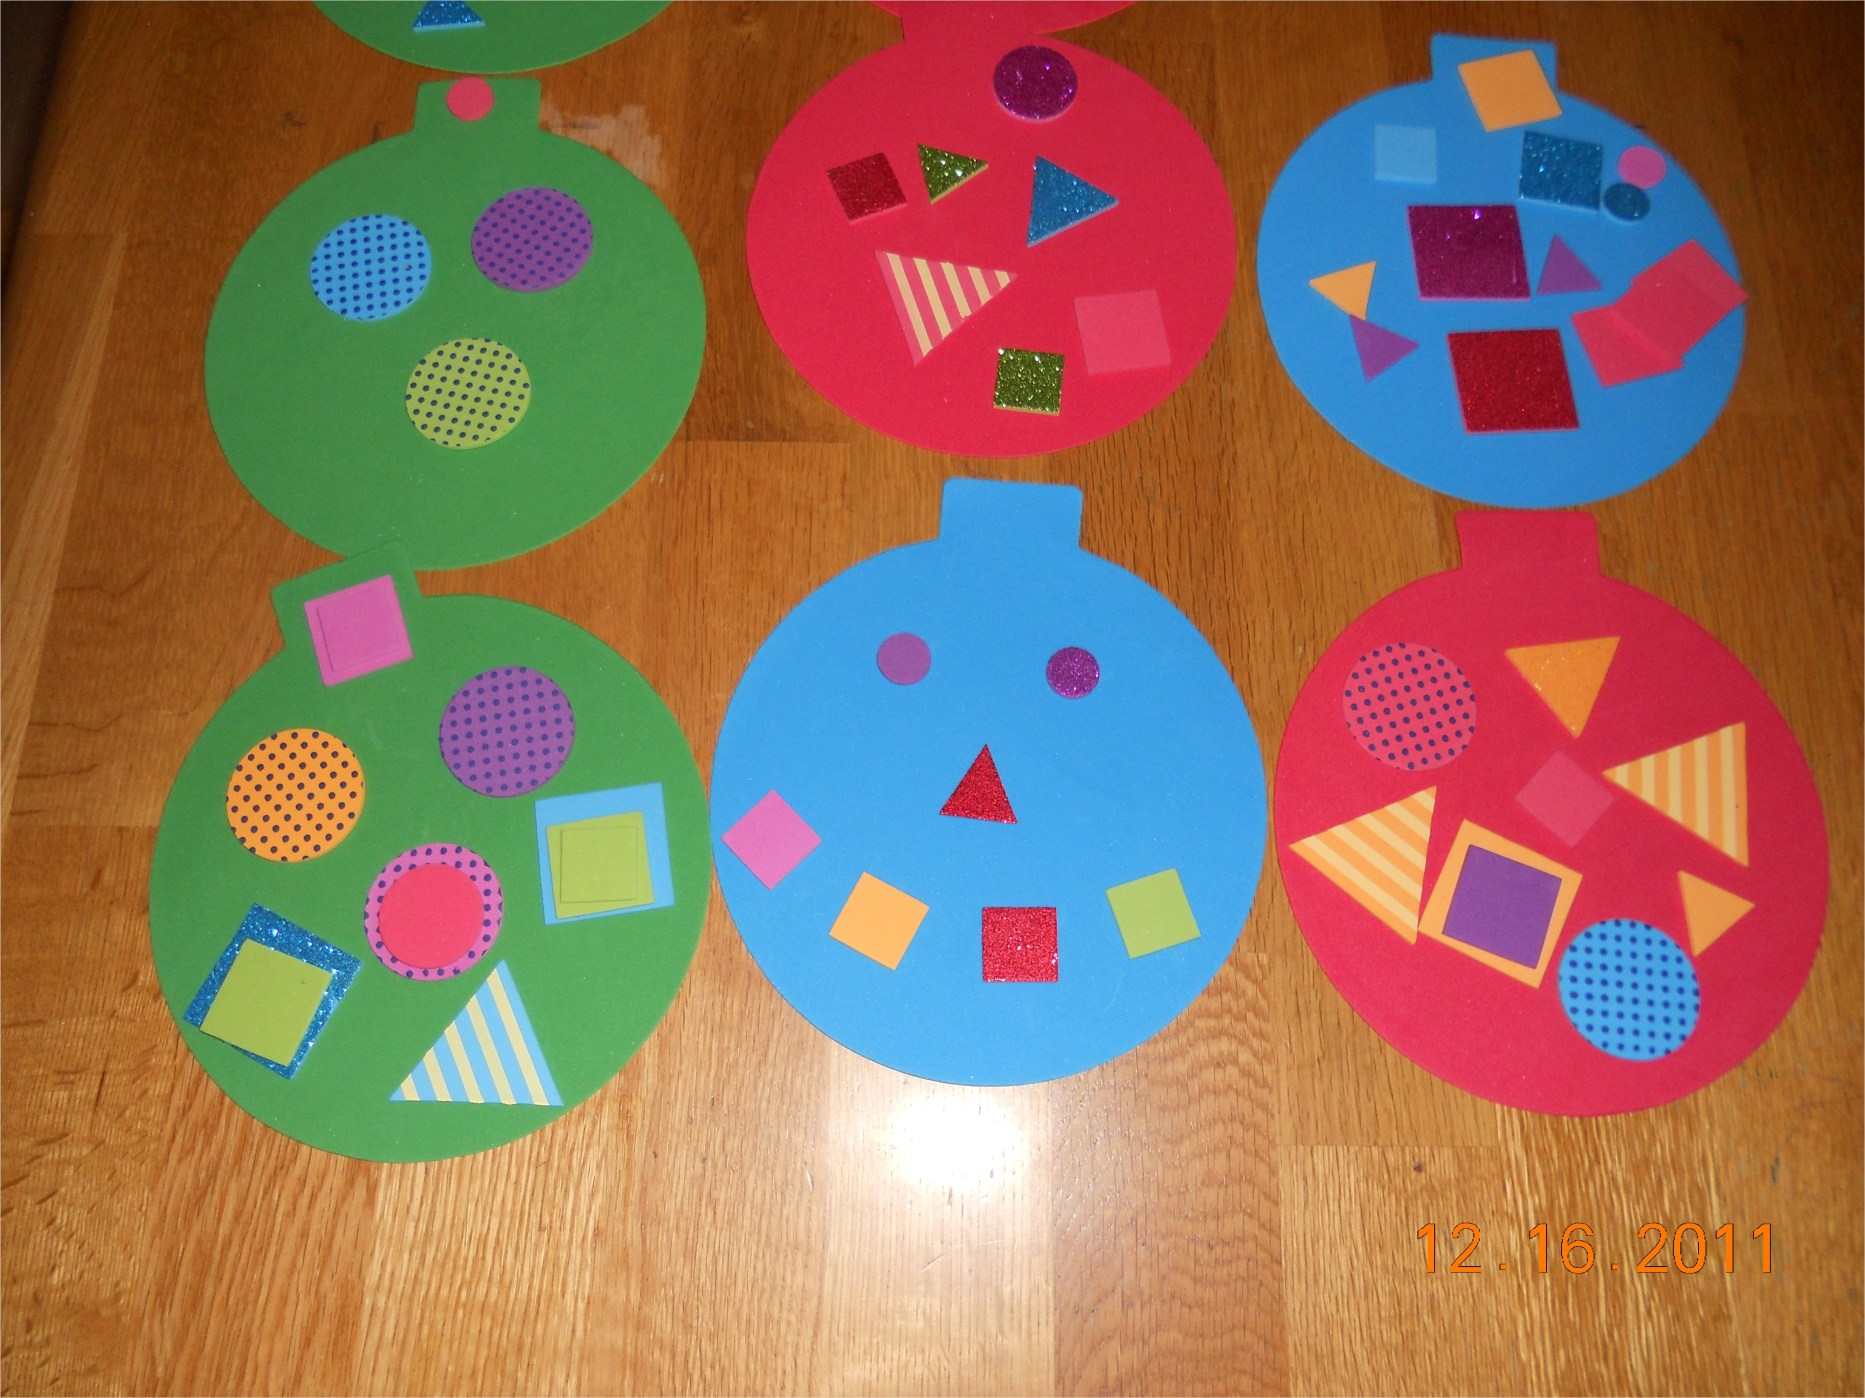 40 Diy Easy Christmas ornament Crafts Ideas 54 15 Fun and Easy Christmas Craft Ideas for Kids – Miss Lassy 3